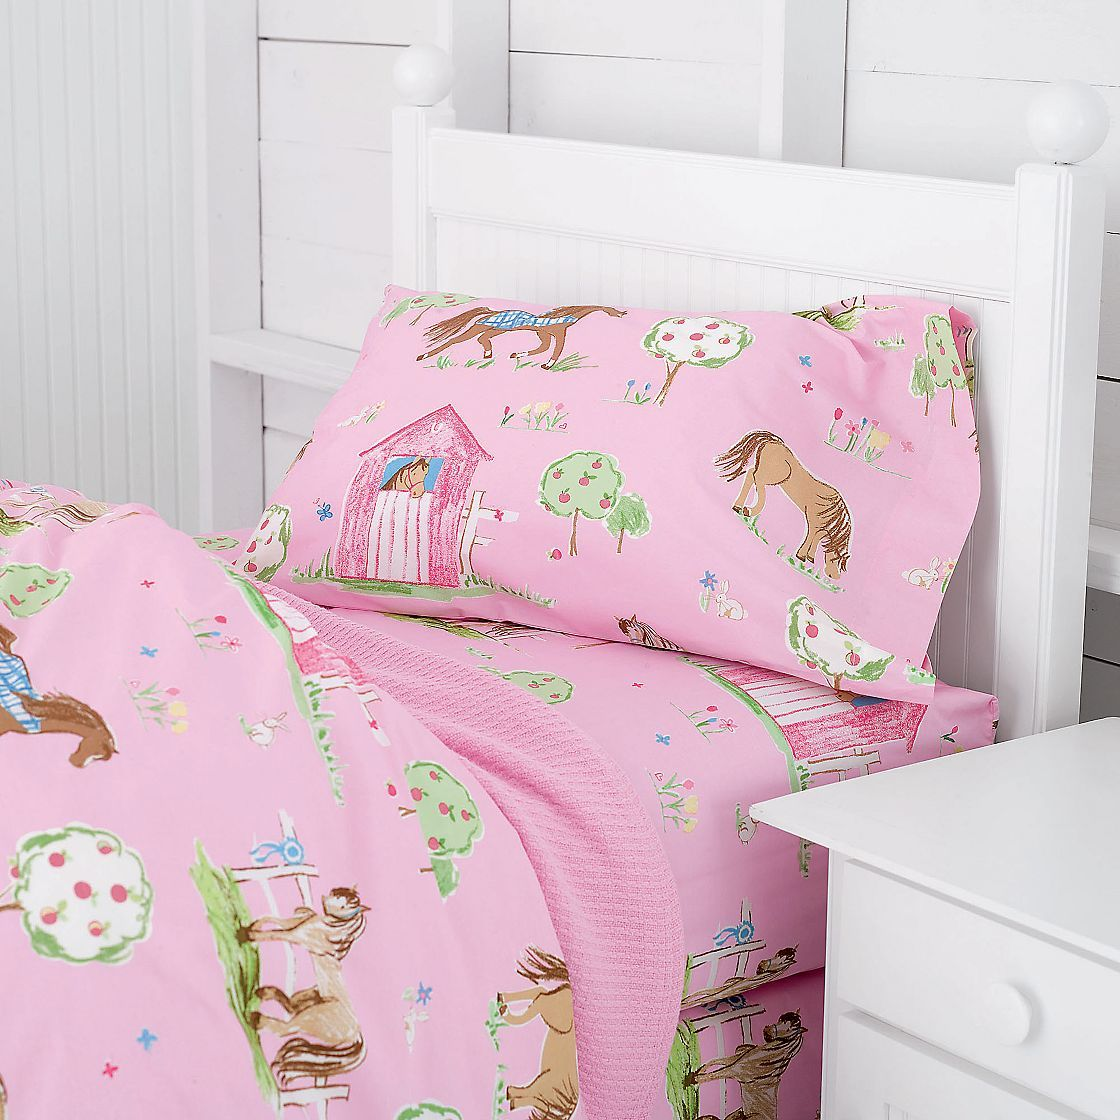 sheets for hadley s cowgirl room chambre litiere pour chevaux literie pour bebe